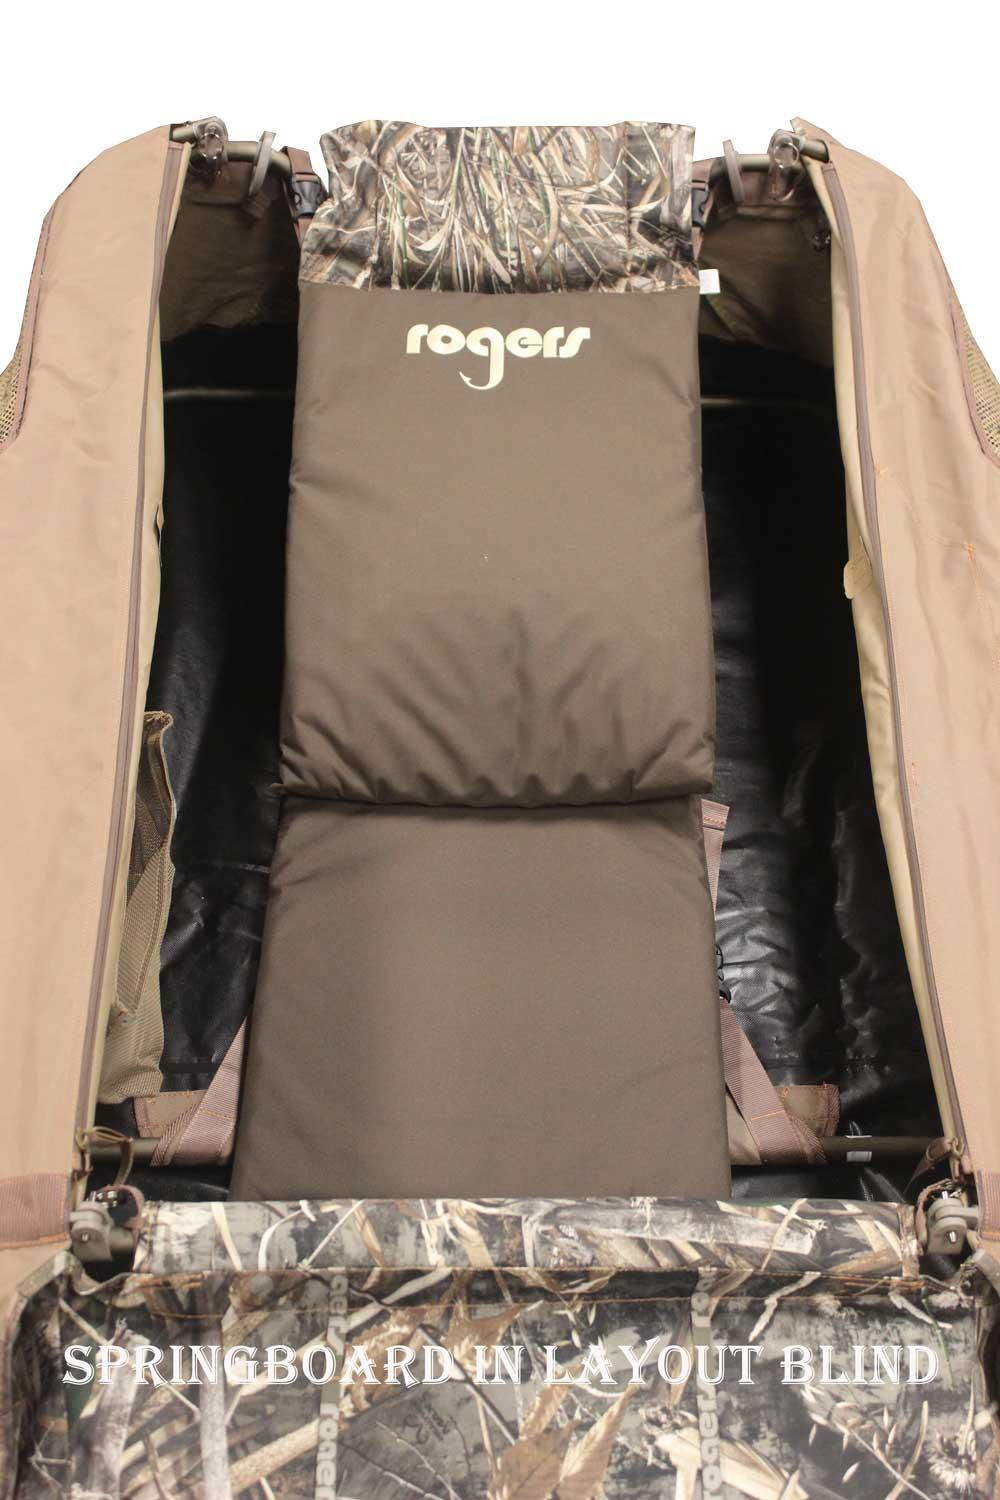 Rogers Springboard Layout Blind Backrest_2.jpg